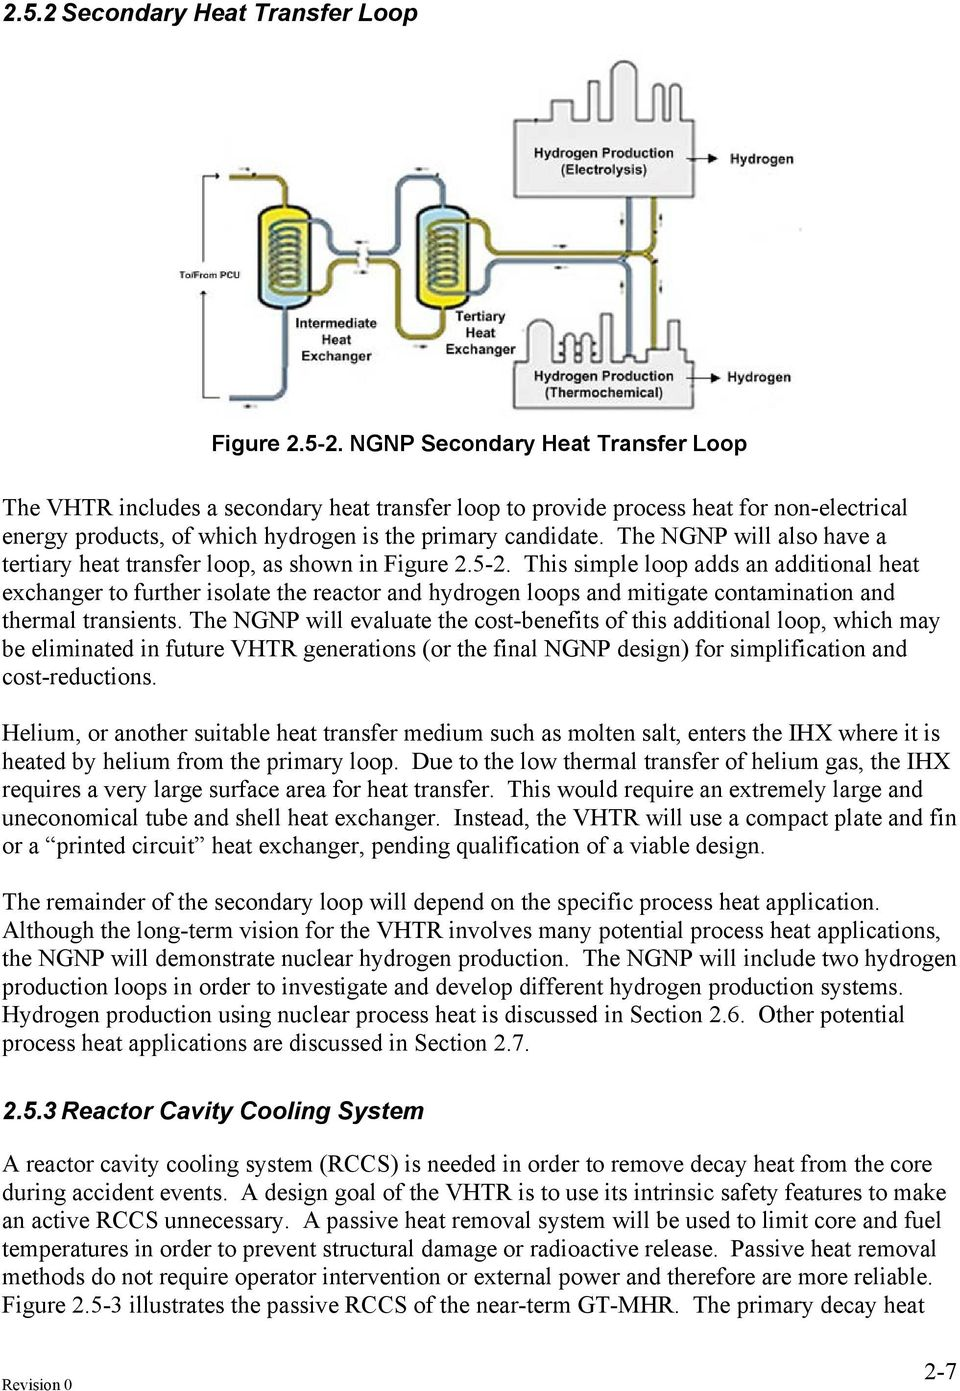 The NGNP will also have a tertiary heat transfer loop, as shown in Figure 2.5-2.